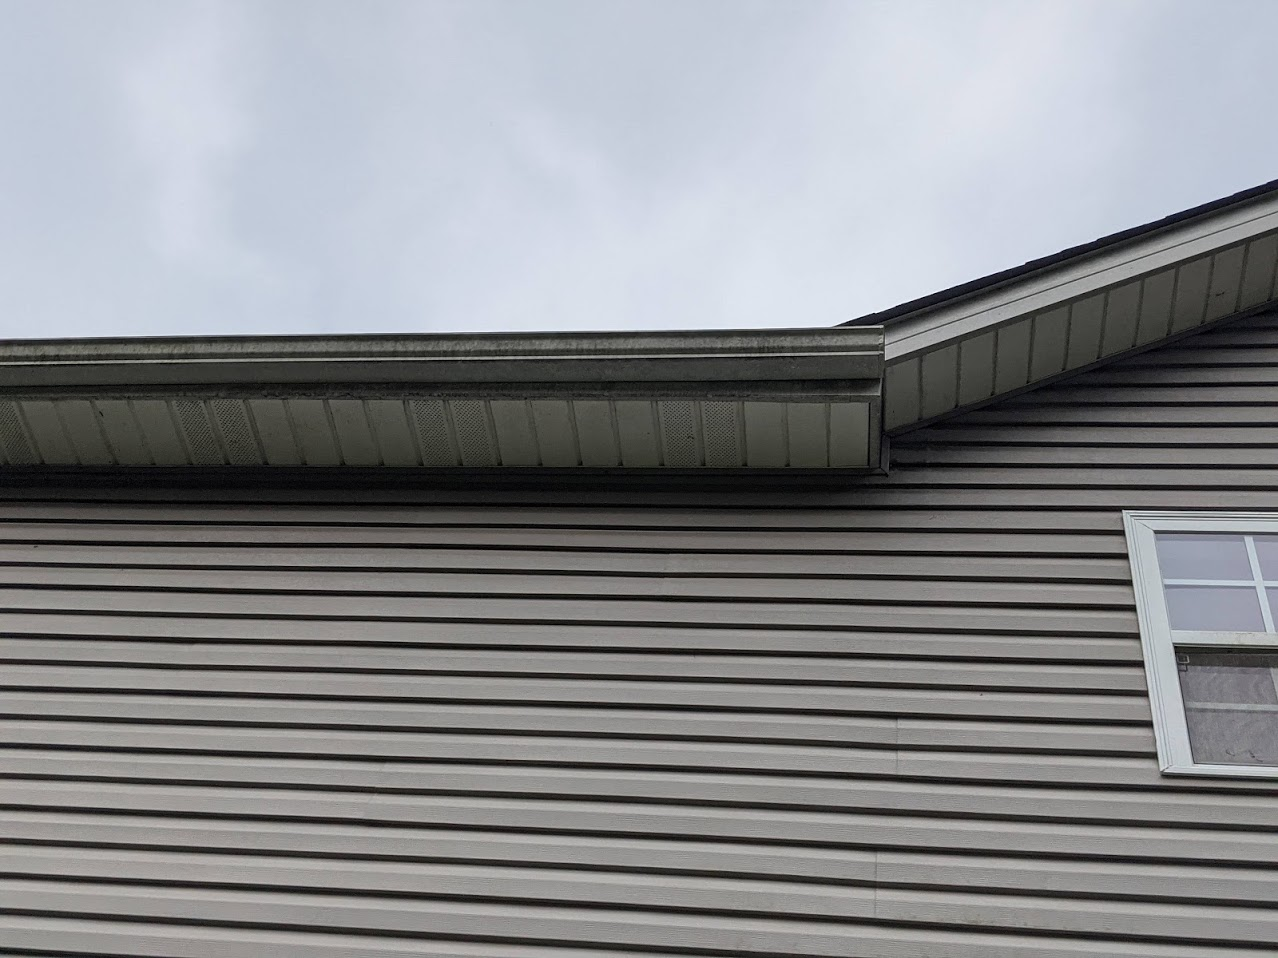 This white gutter and soffit was covered in Mold and Algae